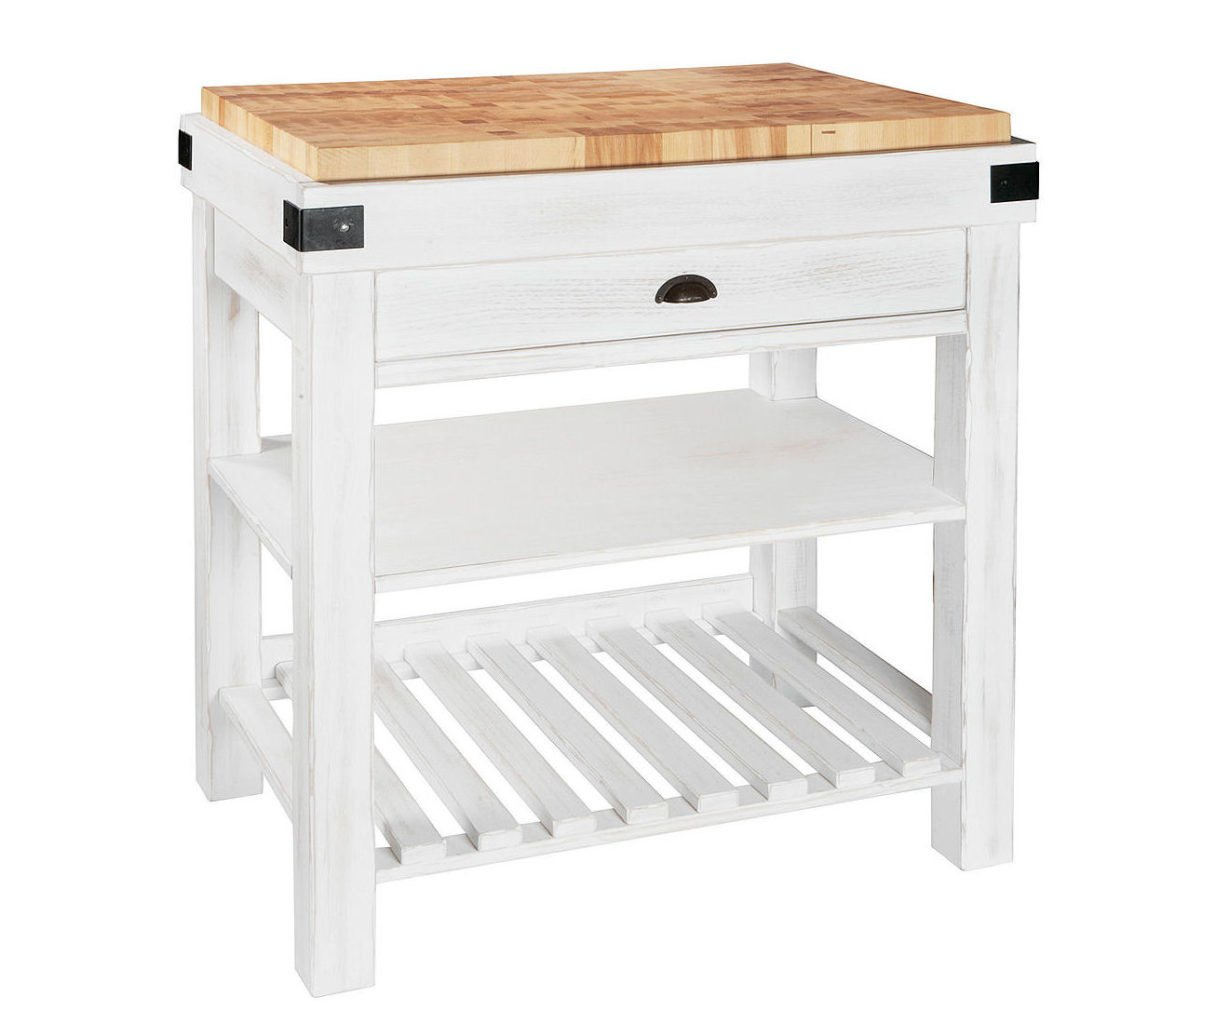 Freestanding Kitchen Islands For Small Spaces